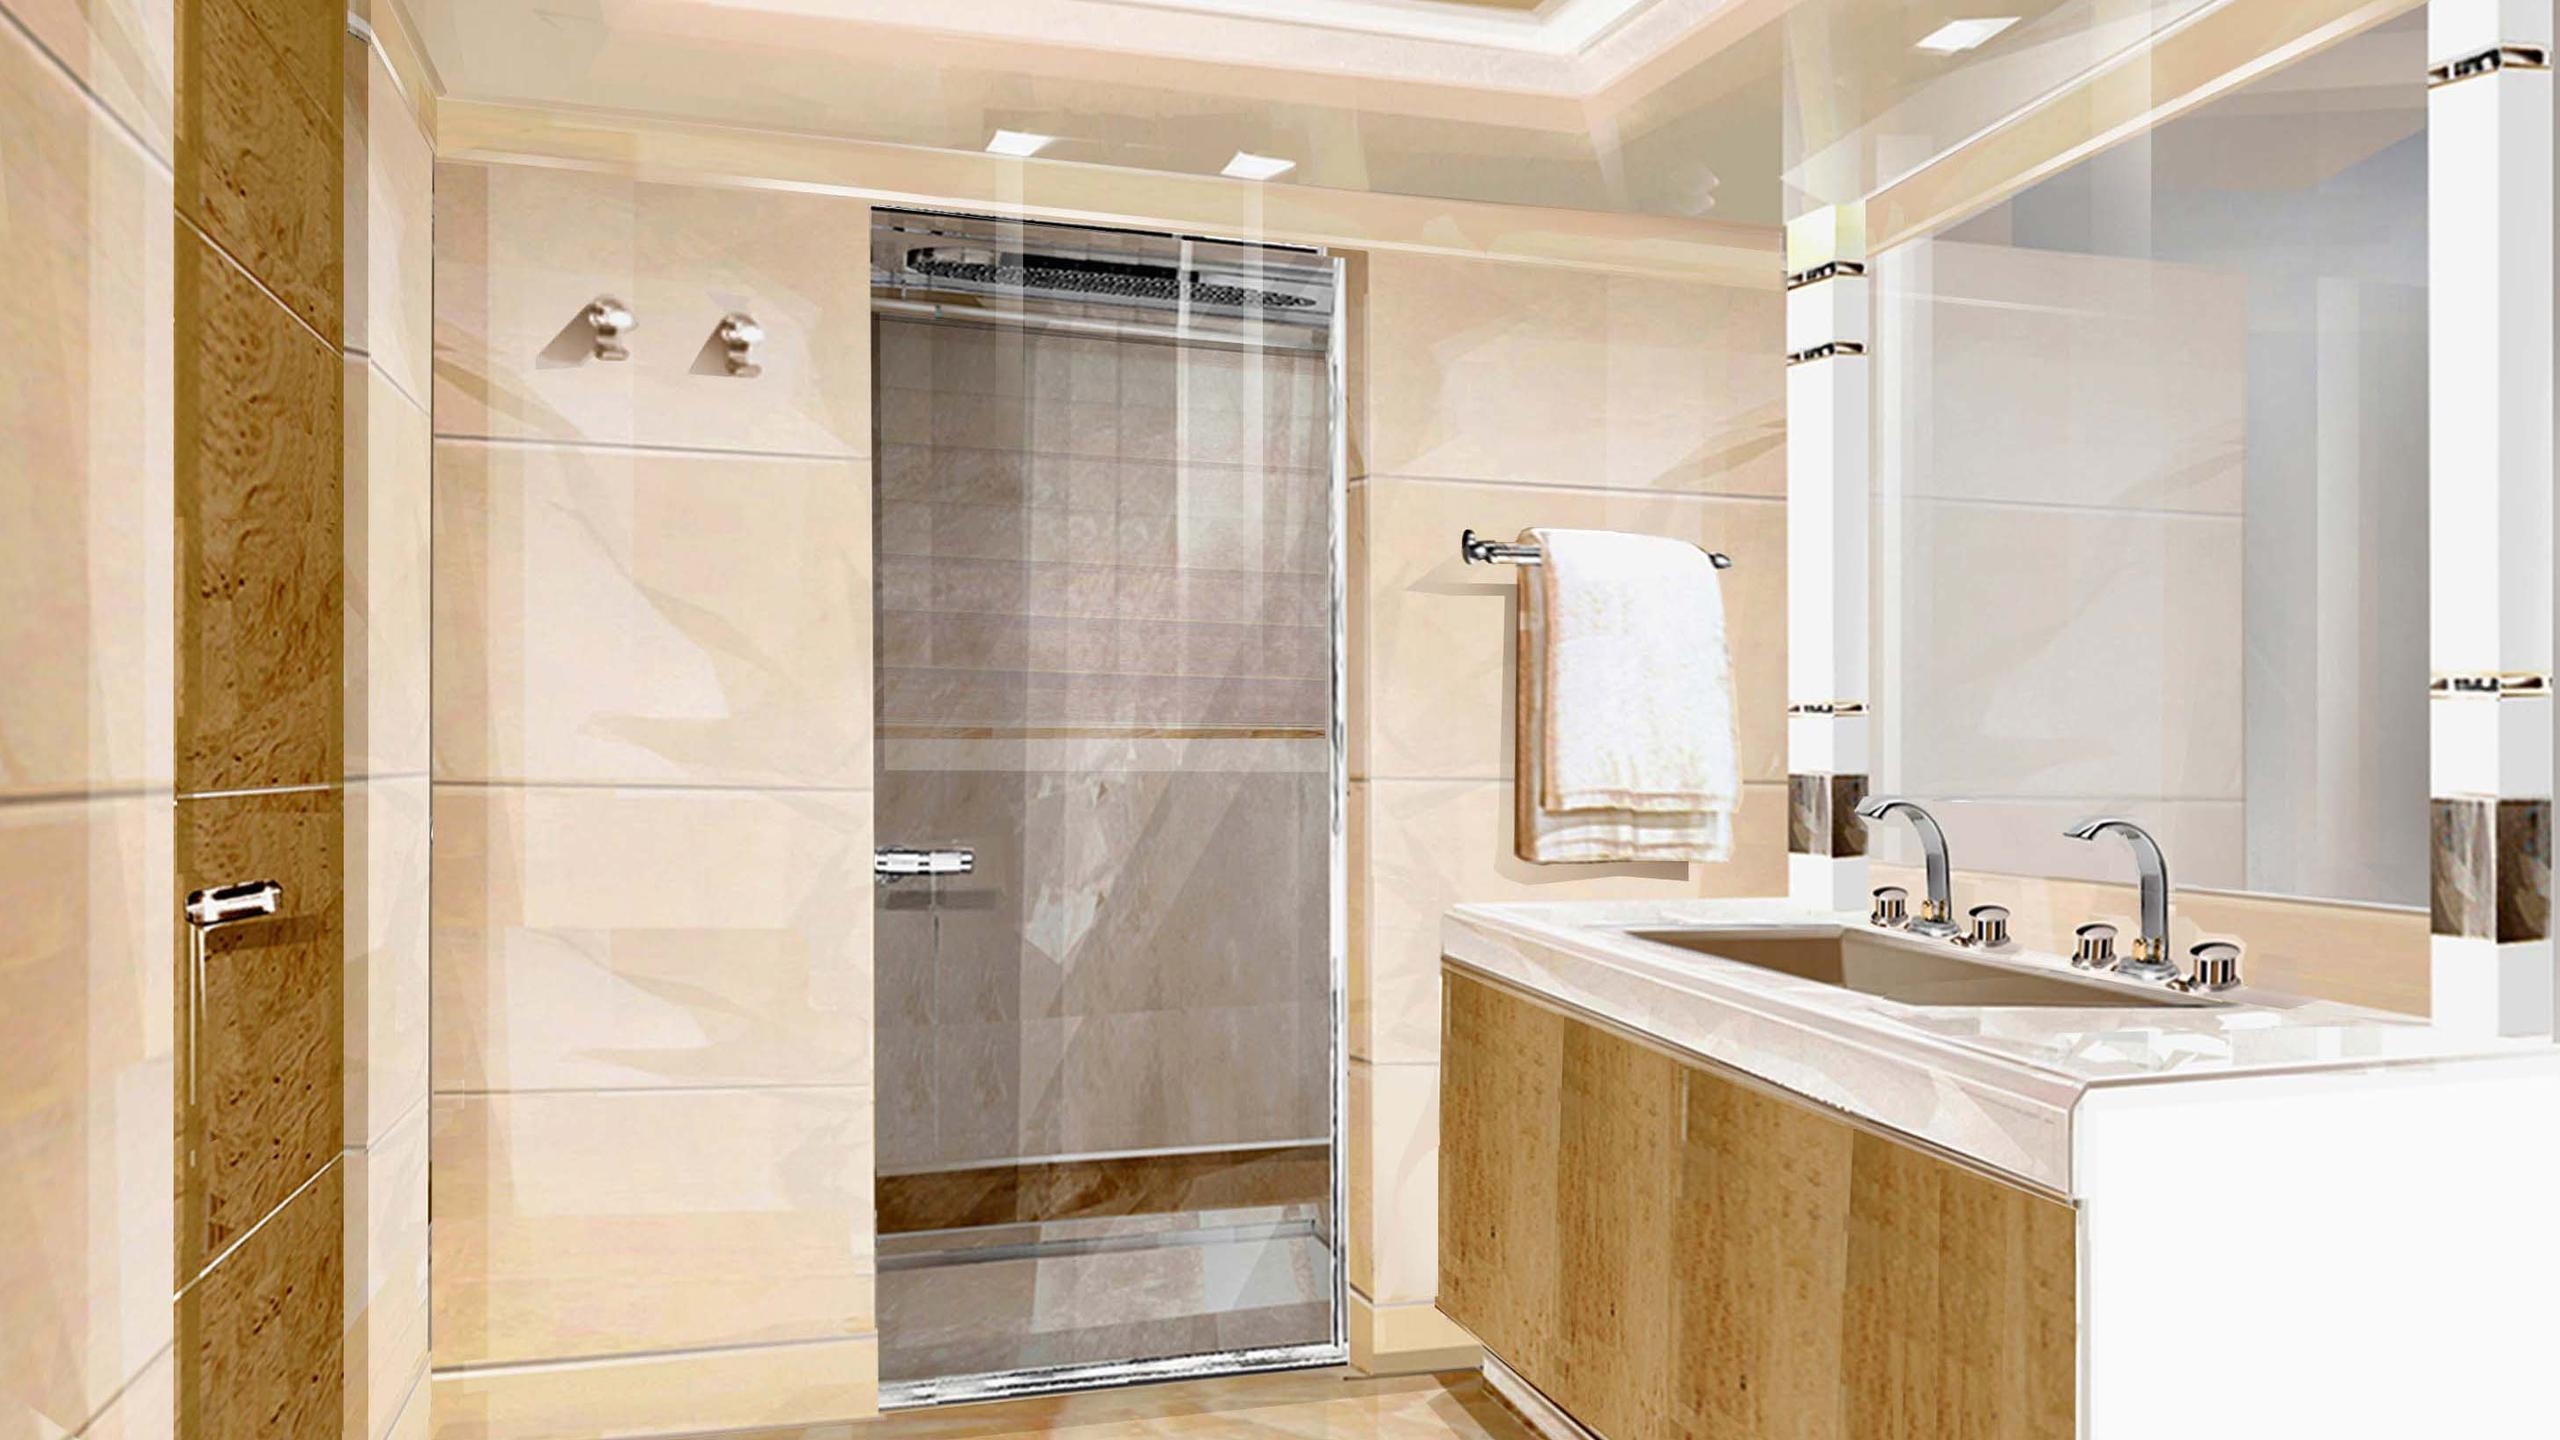 o-pari-3-yacht-twin-bathroom